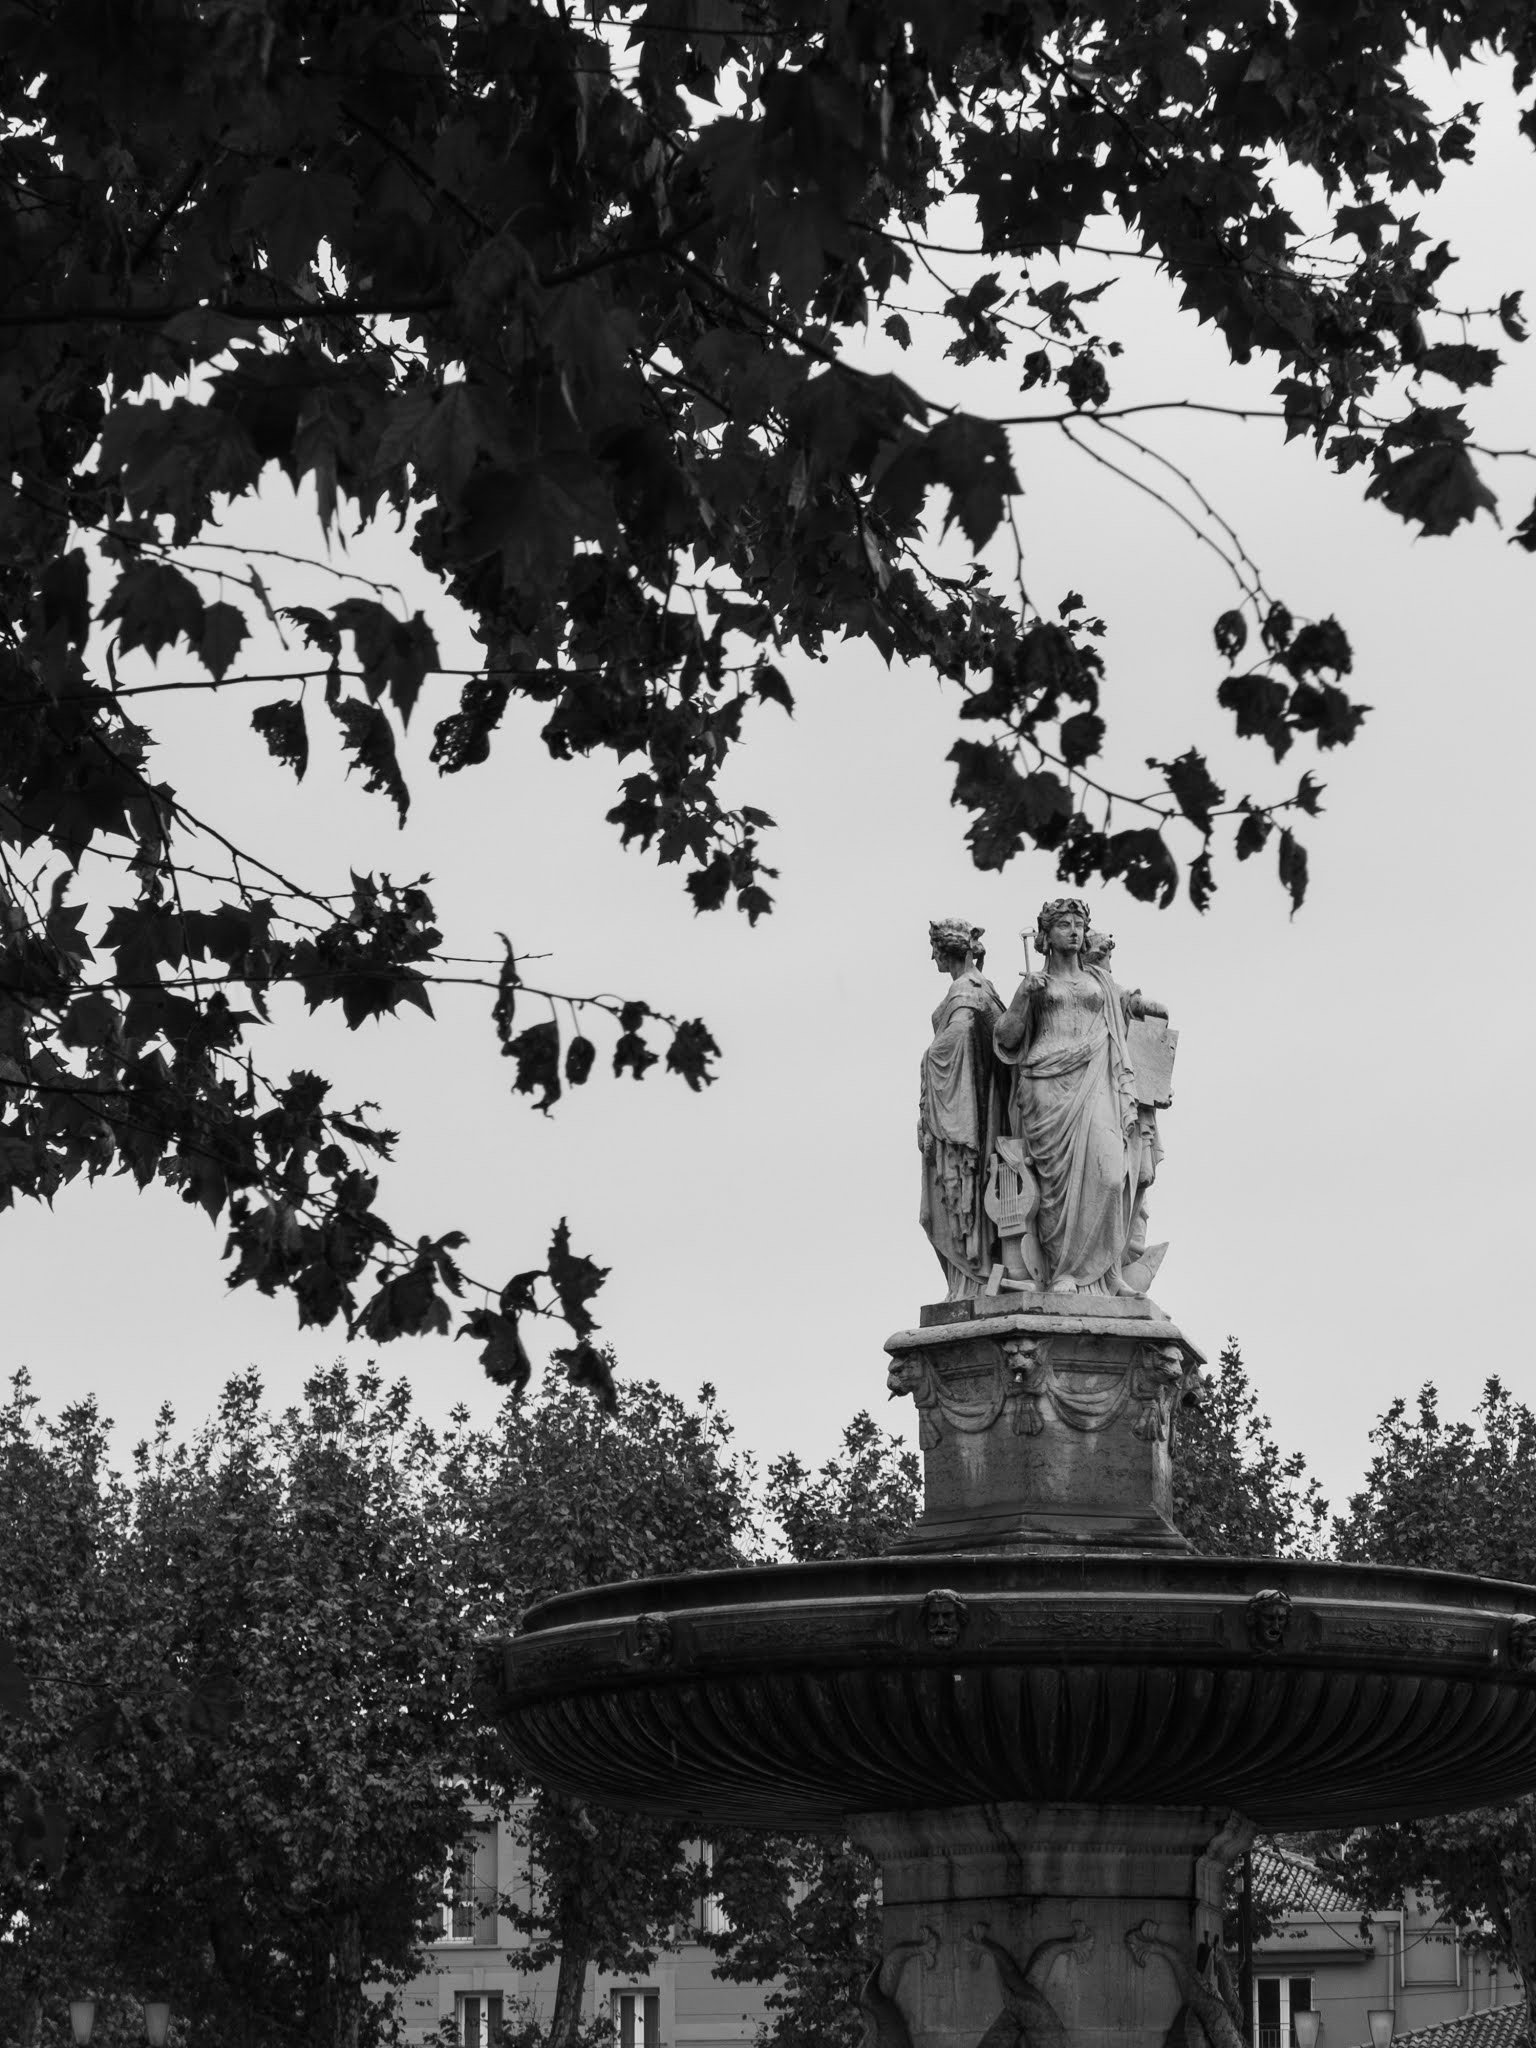 Fontaine de la Rotonde in black and white with sycamore tree branches hanging in front.